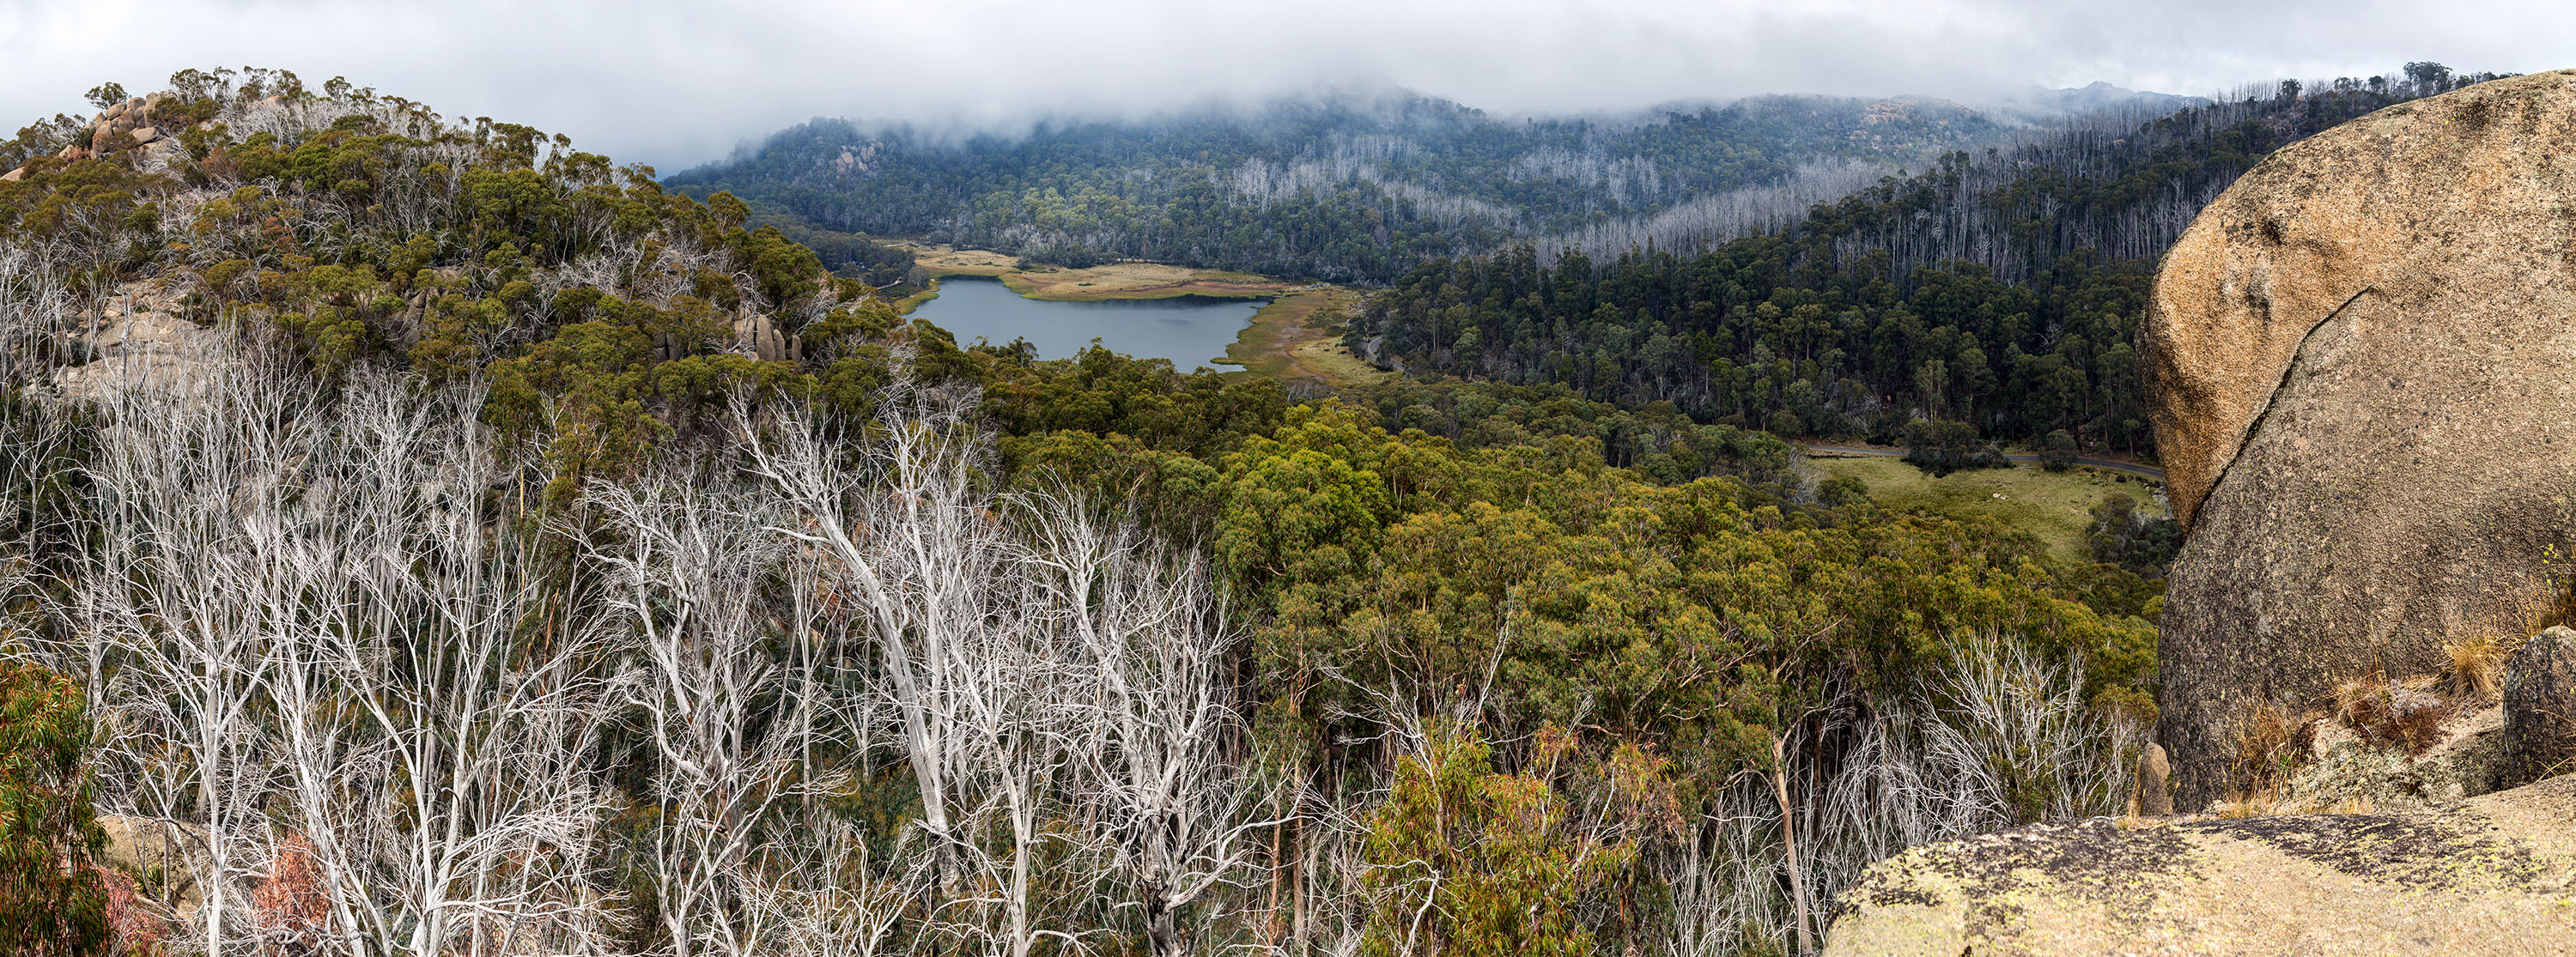 Image of Snow Gums and lake Catani, taken from the Monolith, Mount Buffalo National Park